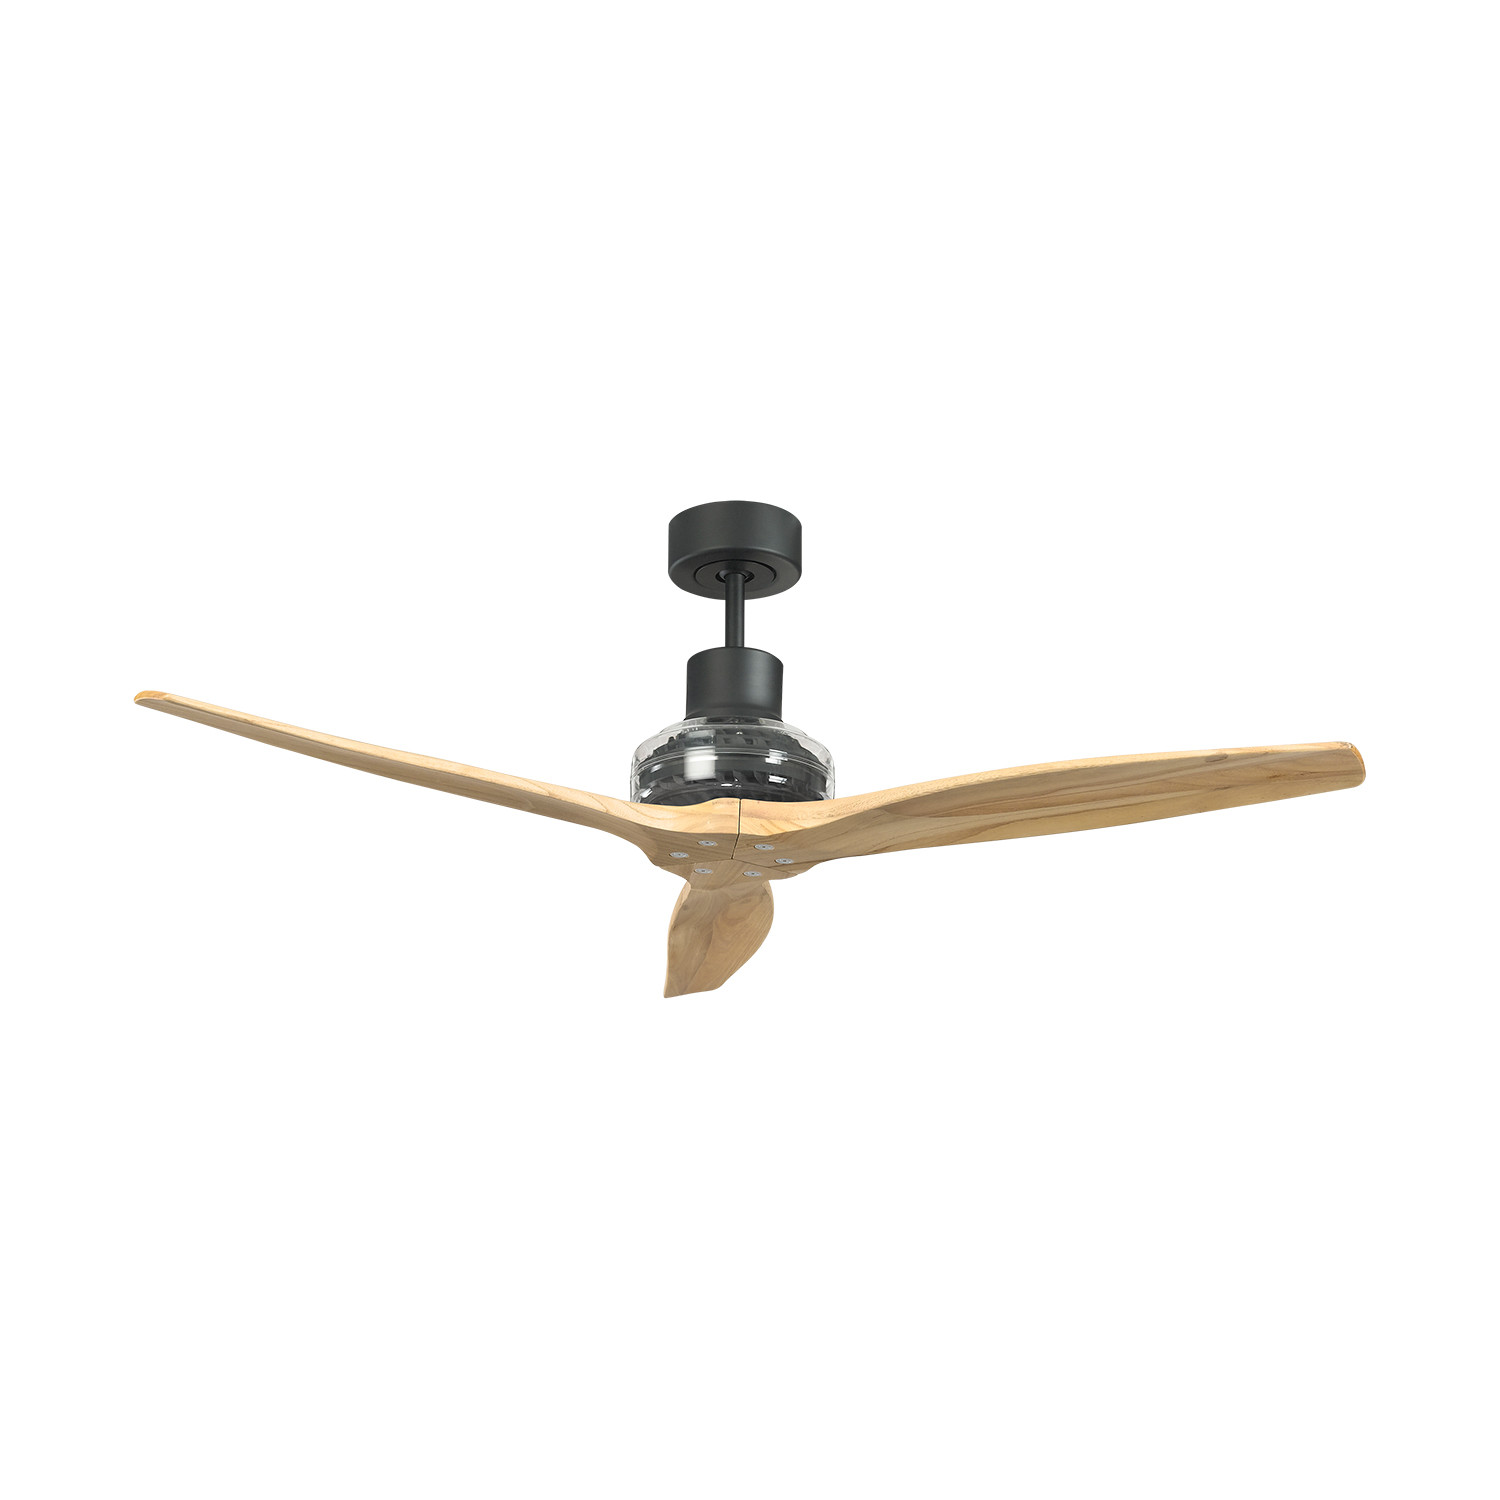 Star propeller ceiling fan black motor white blade star fans touch of modern - Ceiling fan propeller blades ...